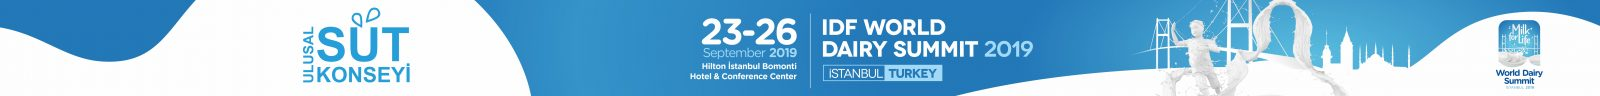 IDF World Dairy Summit 2019